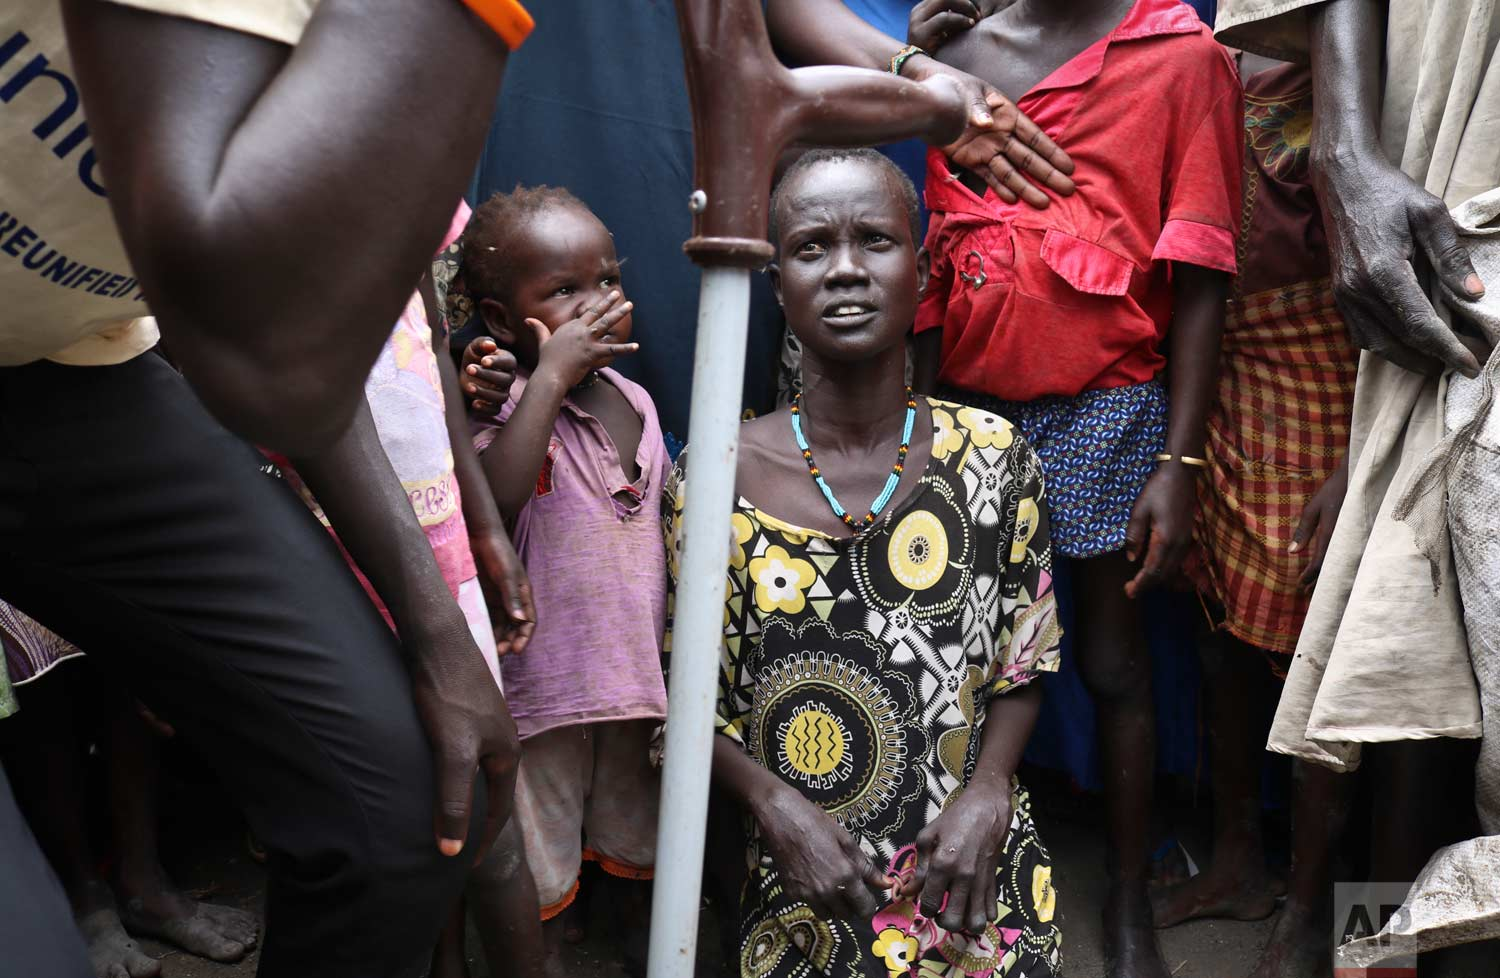 In this photo taken Friday, May 26, 2017, mother Nyayan Koang, who is unable to stand up due to polio, gazes at her son James, a former child soldier walking with a crutch, left, minutes after they were reunited and she saw him for the first time in 3 years, at a protection of civilians site in Bentiu, South Sudan. (AP Photo/Sam Mednick)